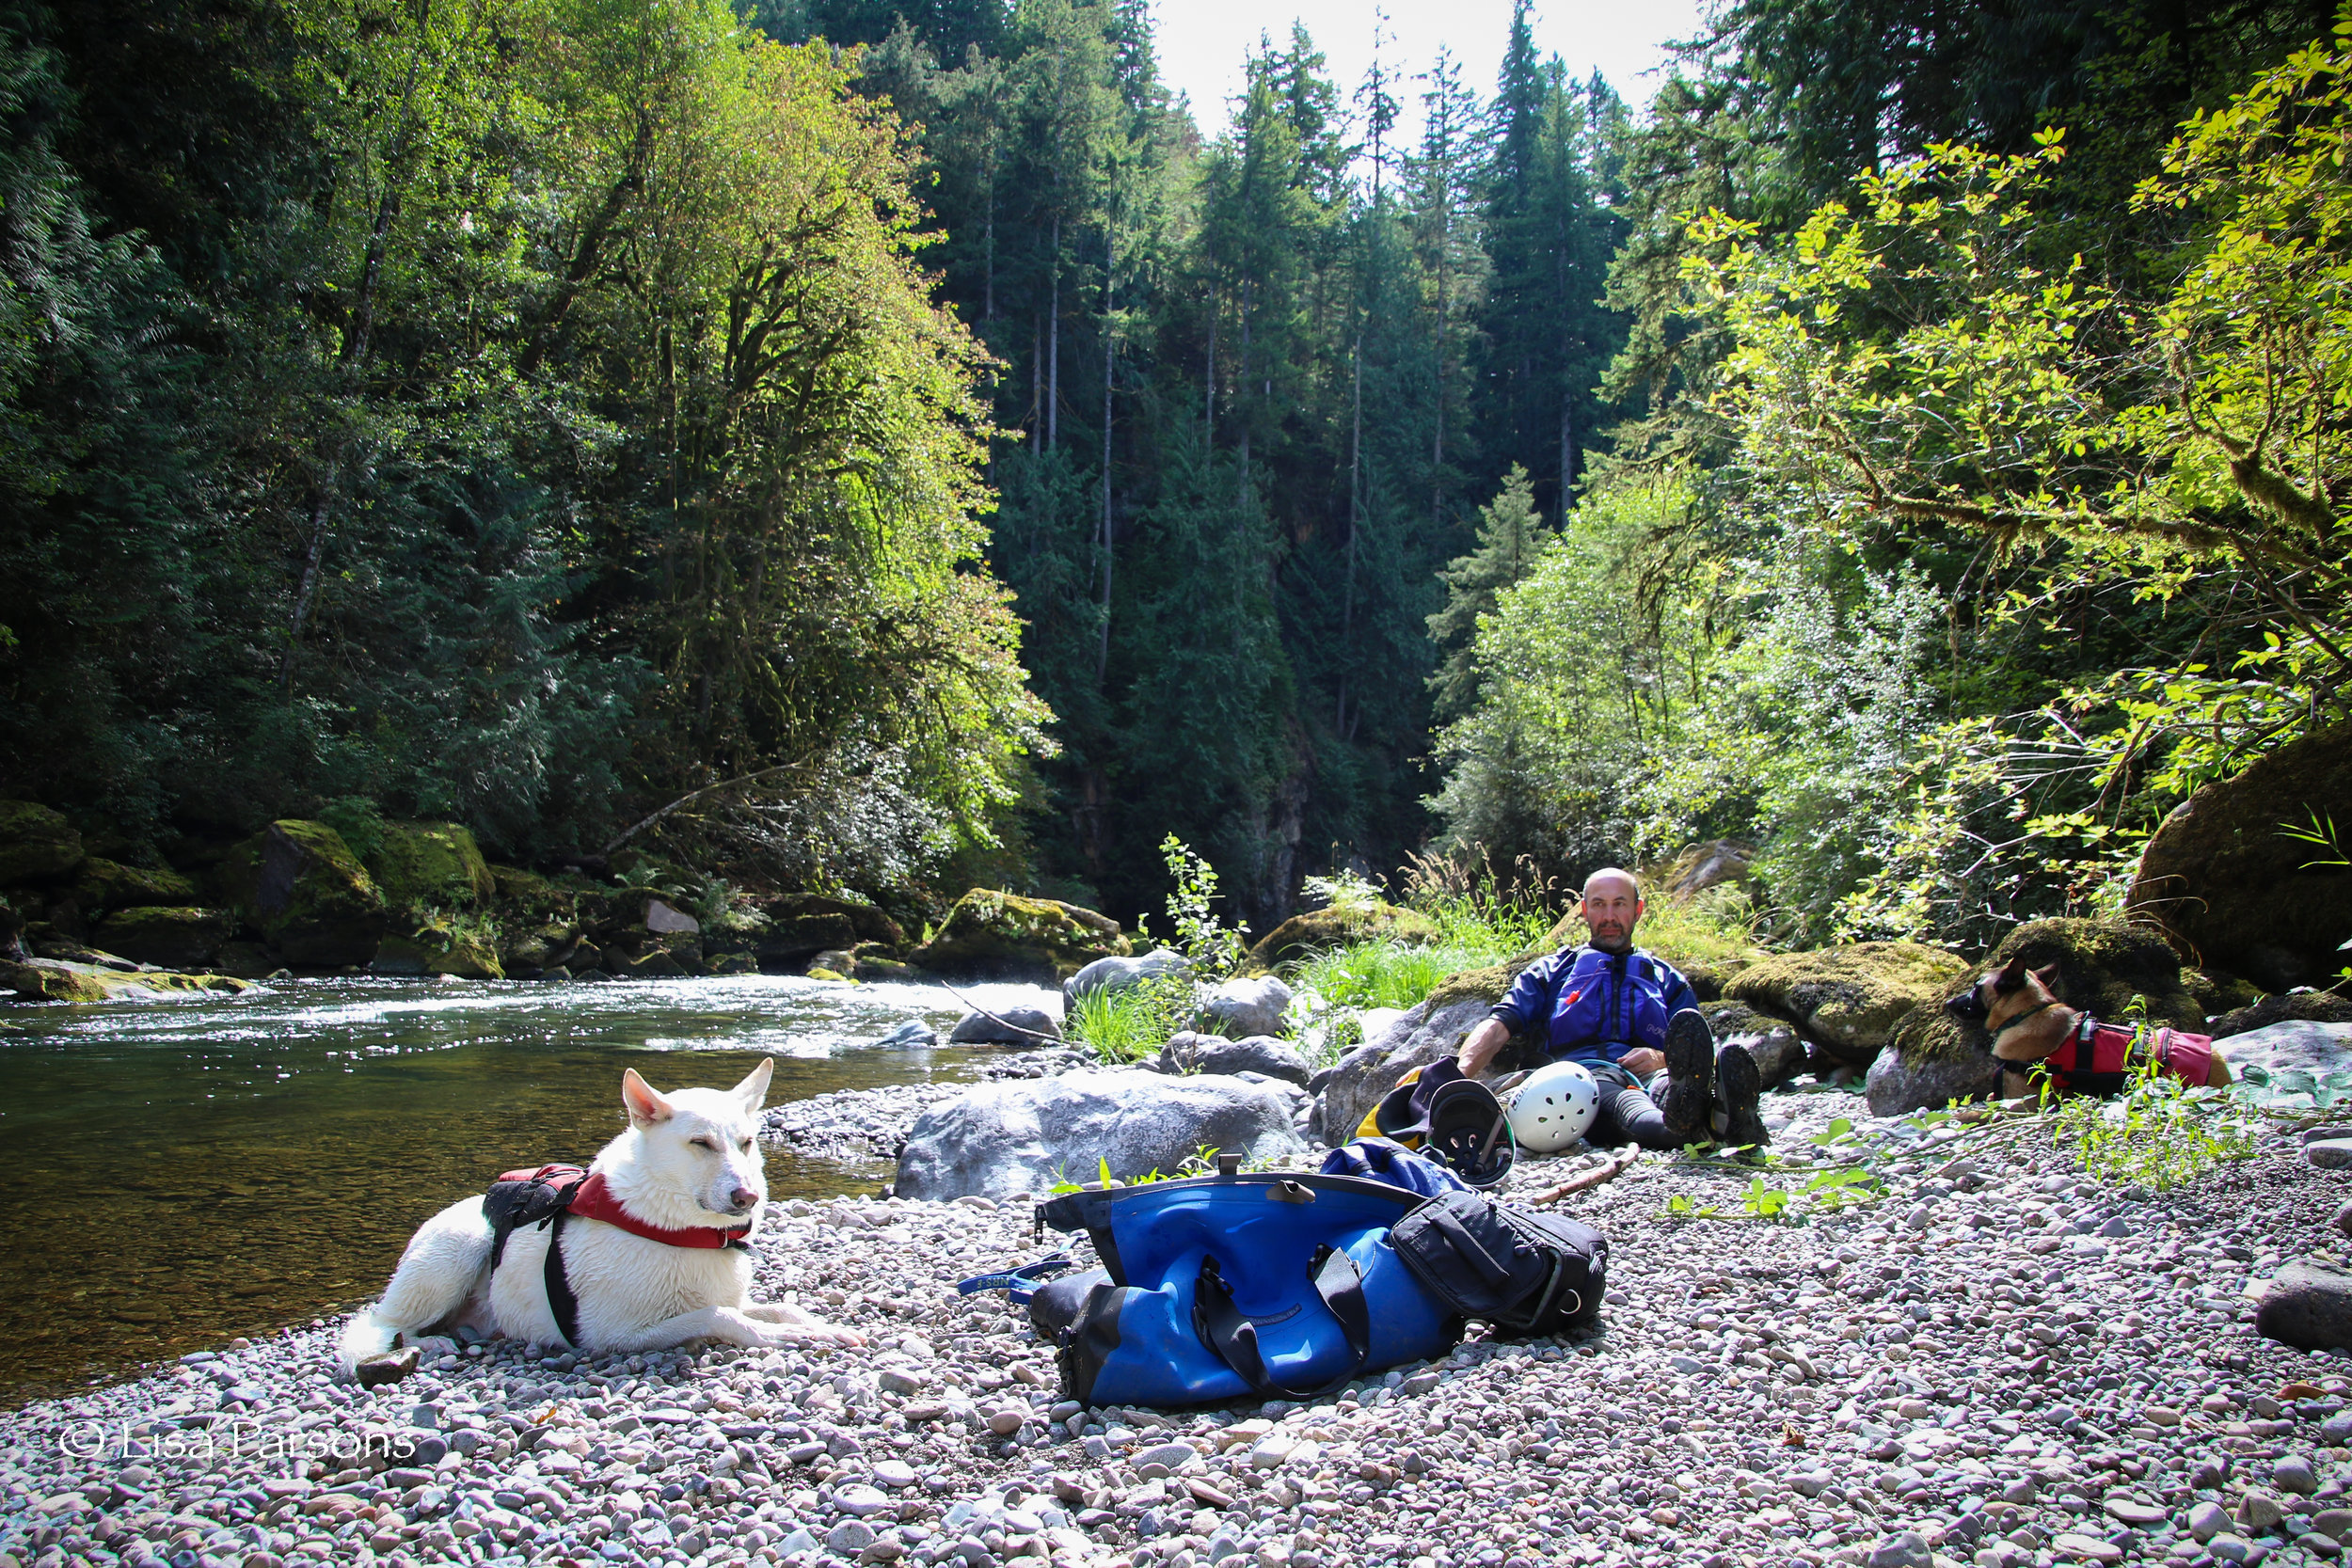 Taking a much needed break between the two rapids Mercury and the Nozzle. The two most notable rapids in the gorge.